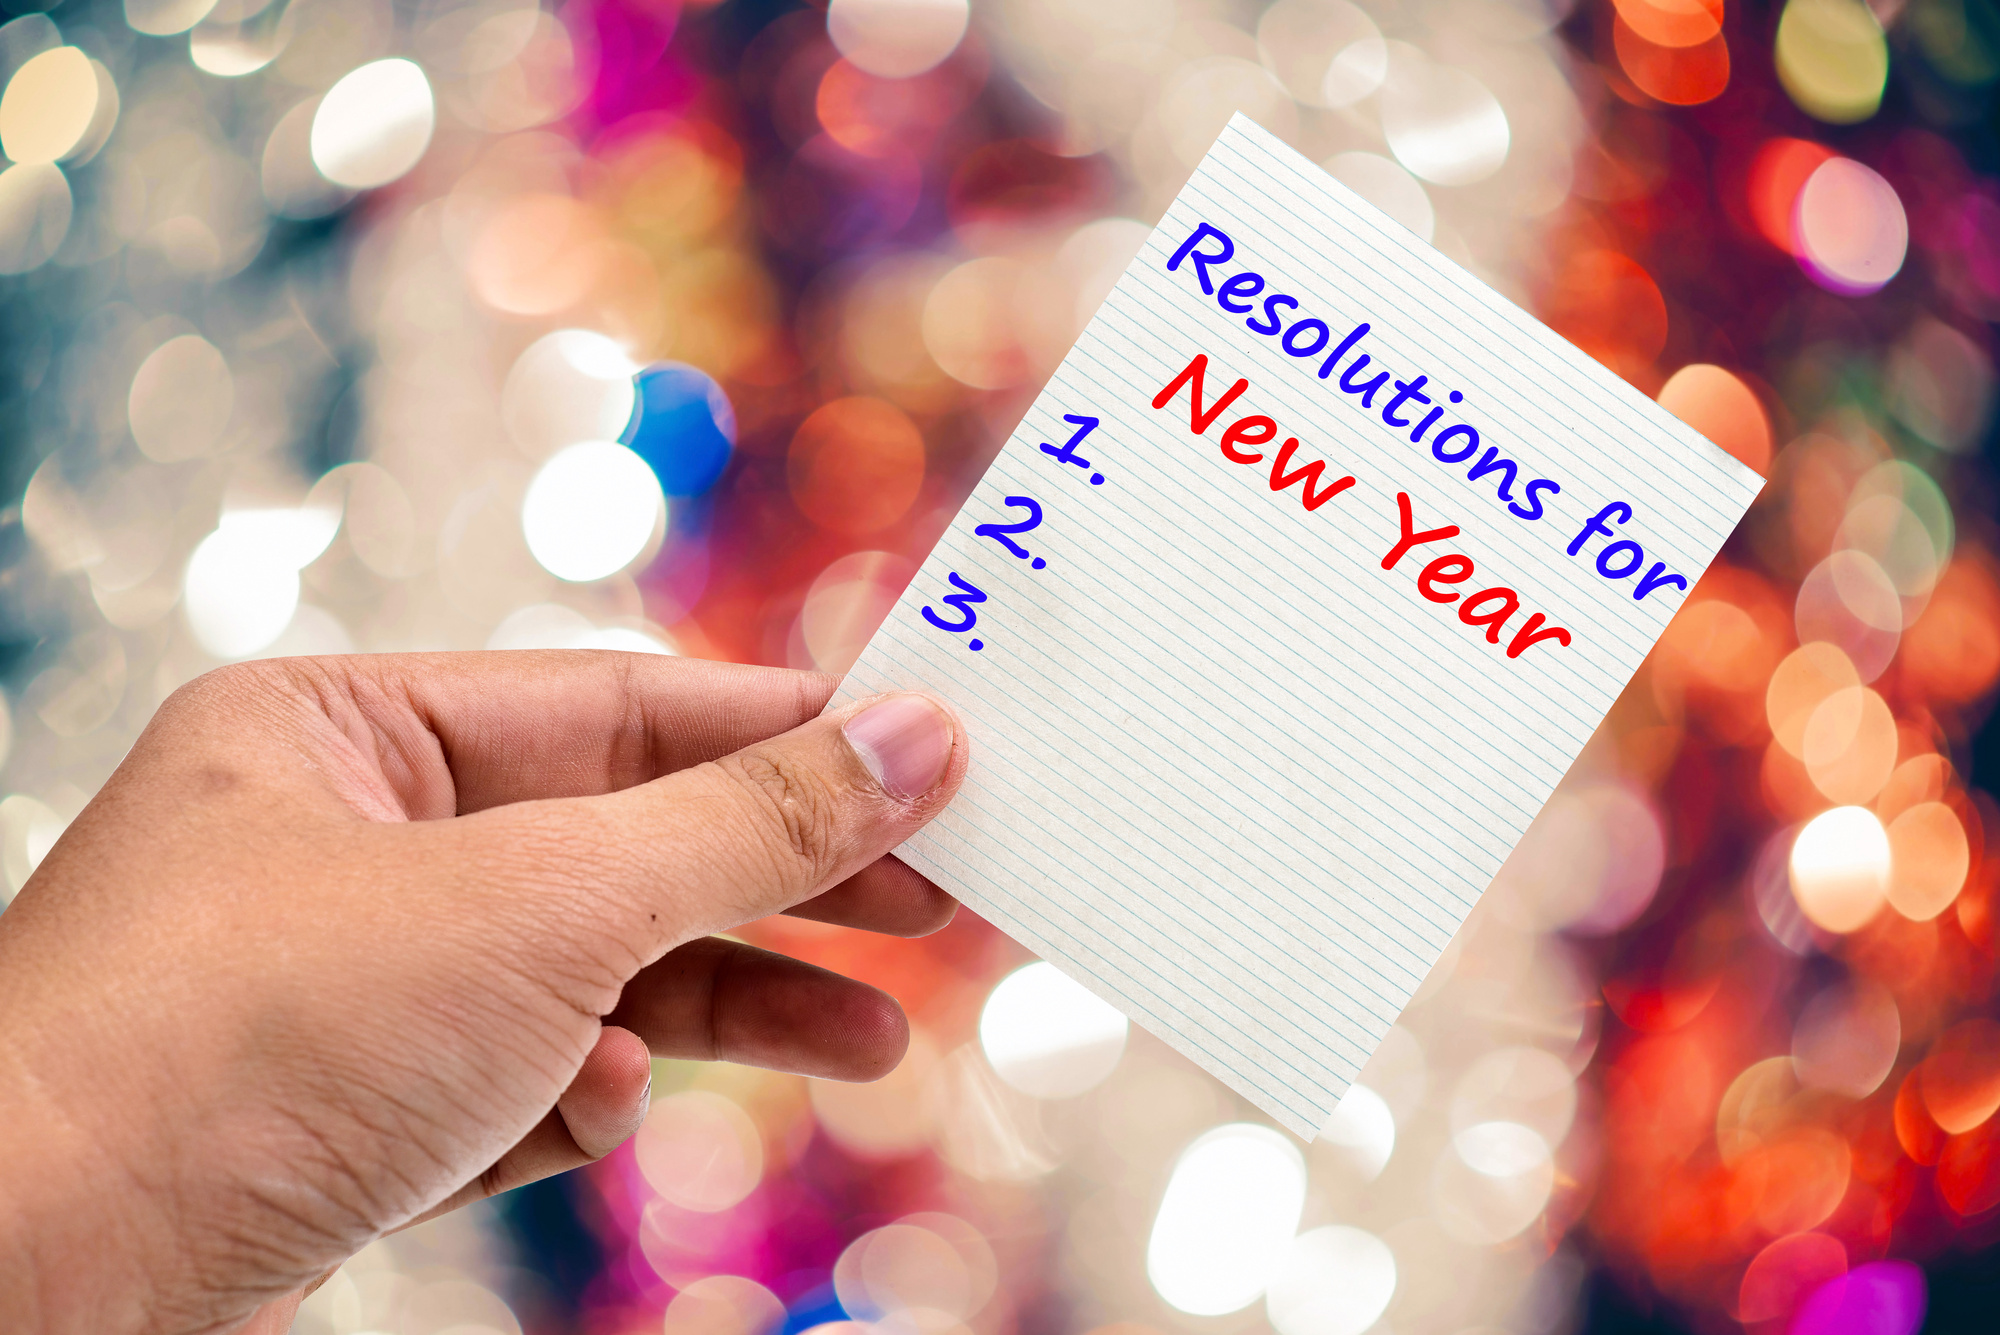 The 5 Best New Year's Resolutions for a Healthy and Happy 2019